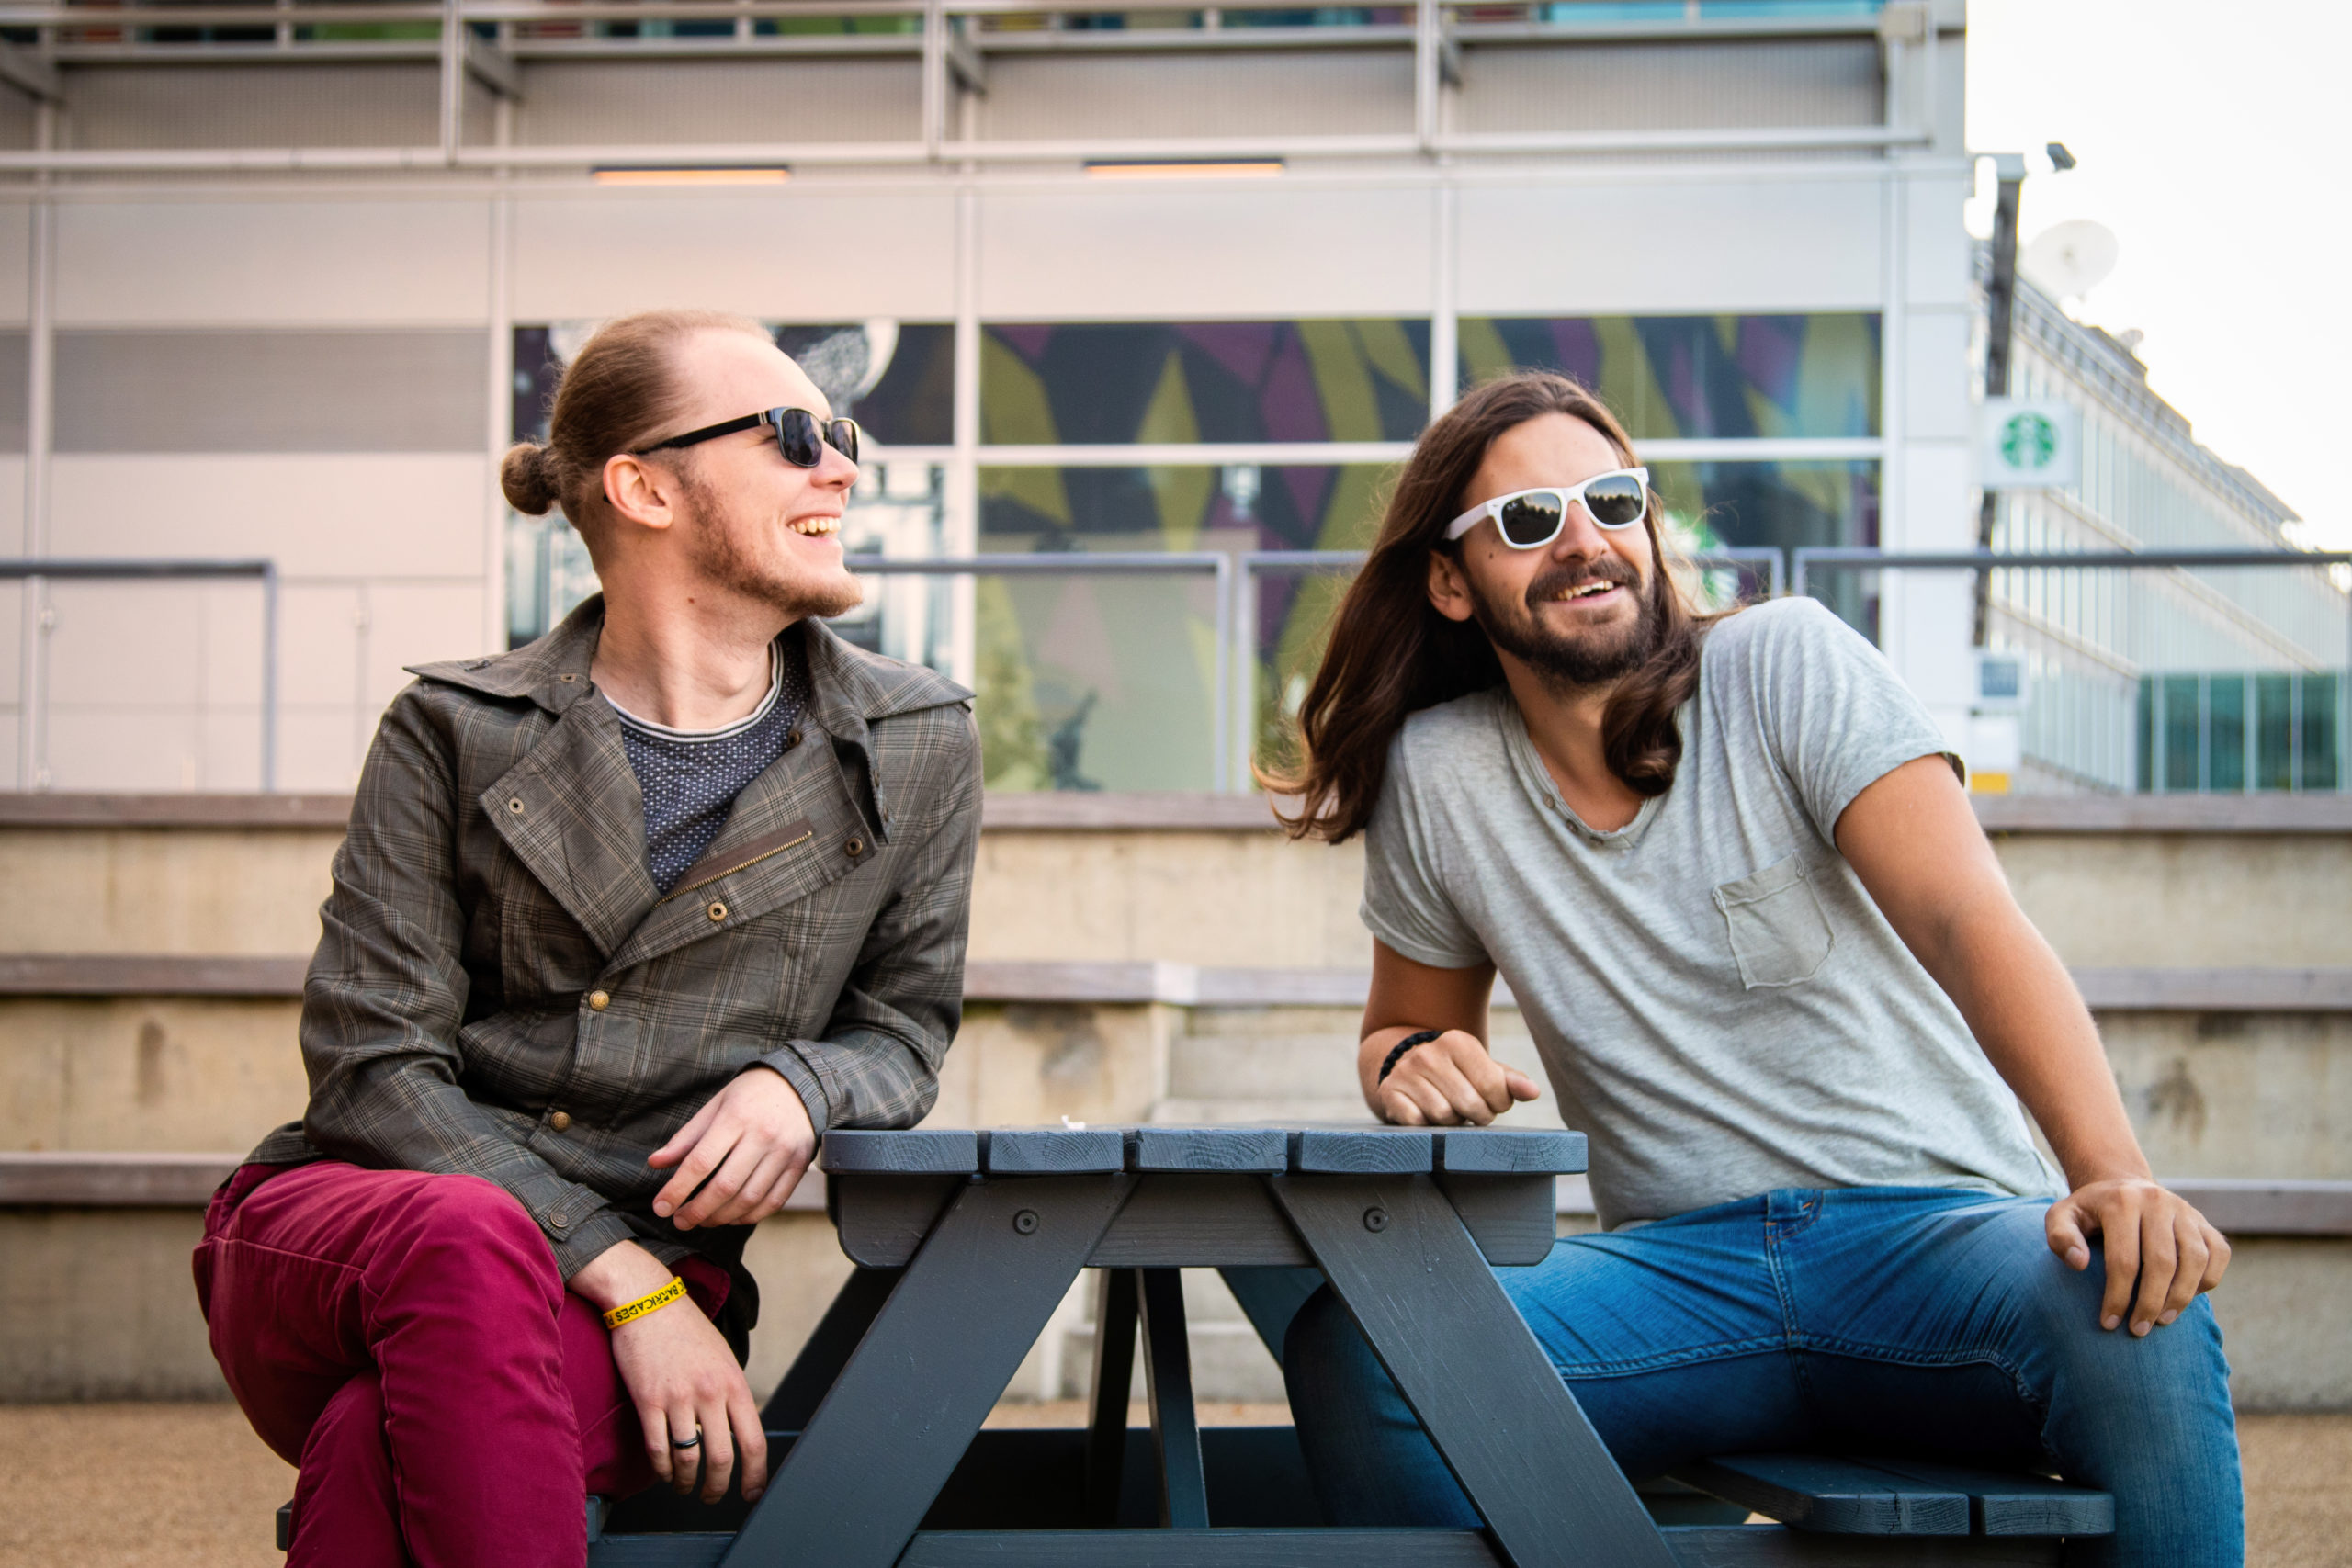 THE GHOST GENERATION X PLASTIC BARRICADES/INTERVIEW